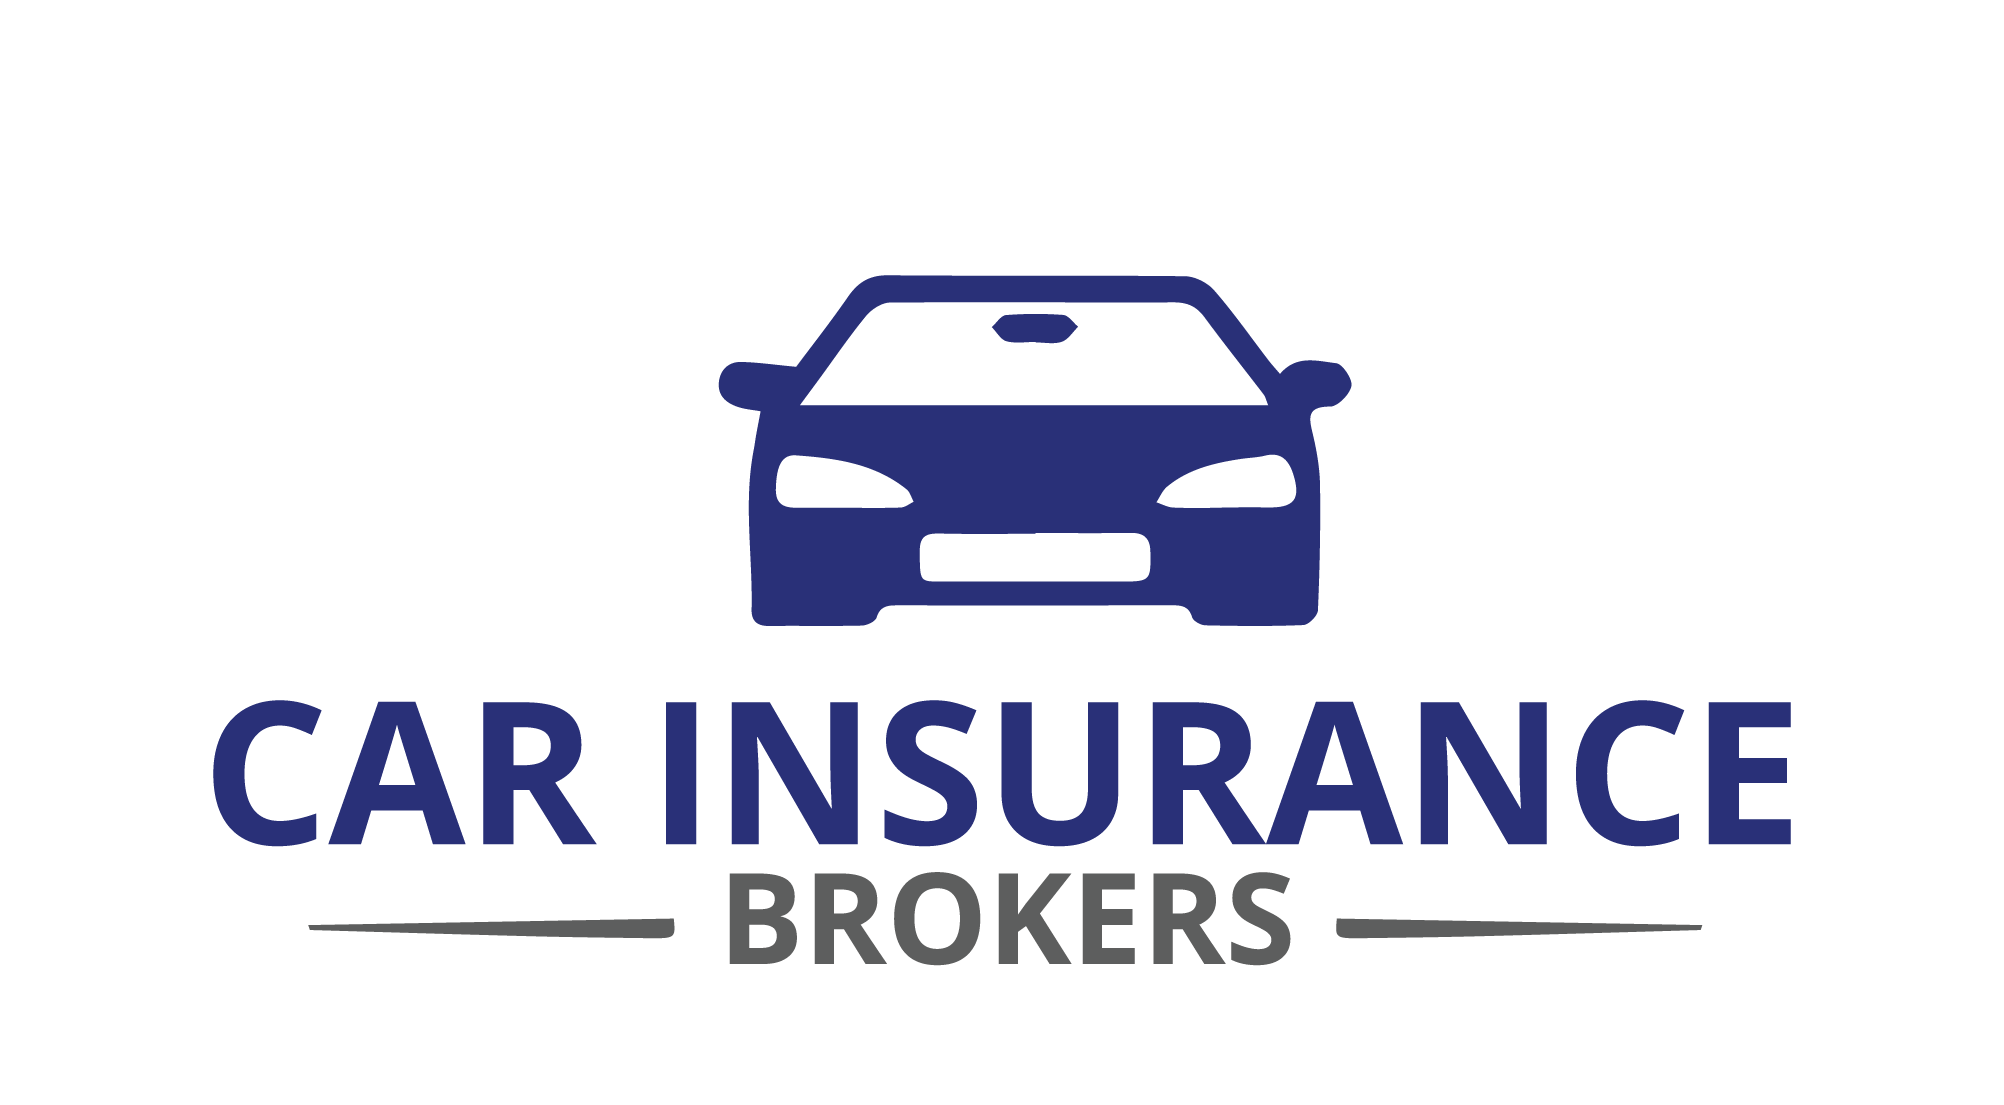 Car Insurance Brokers